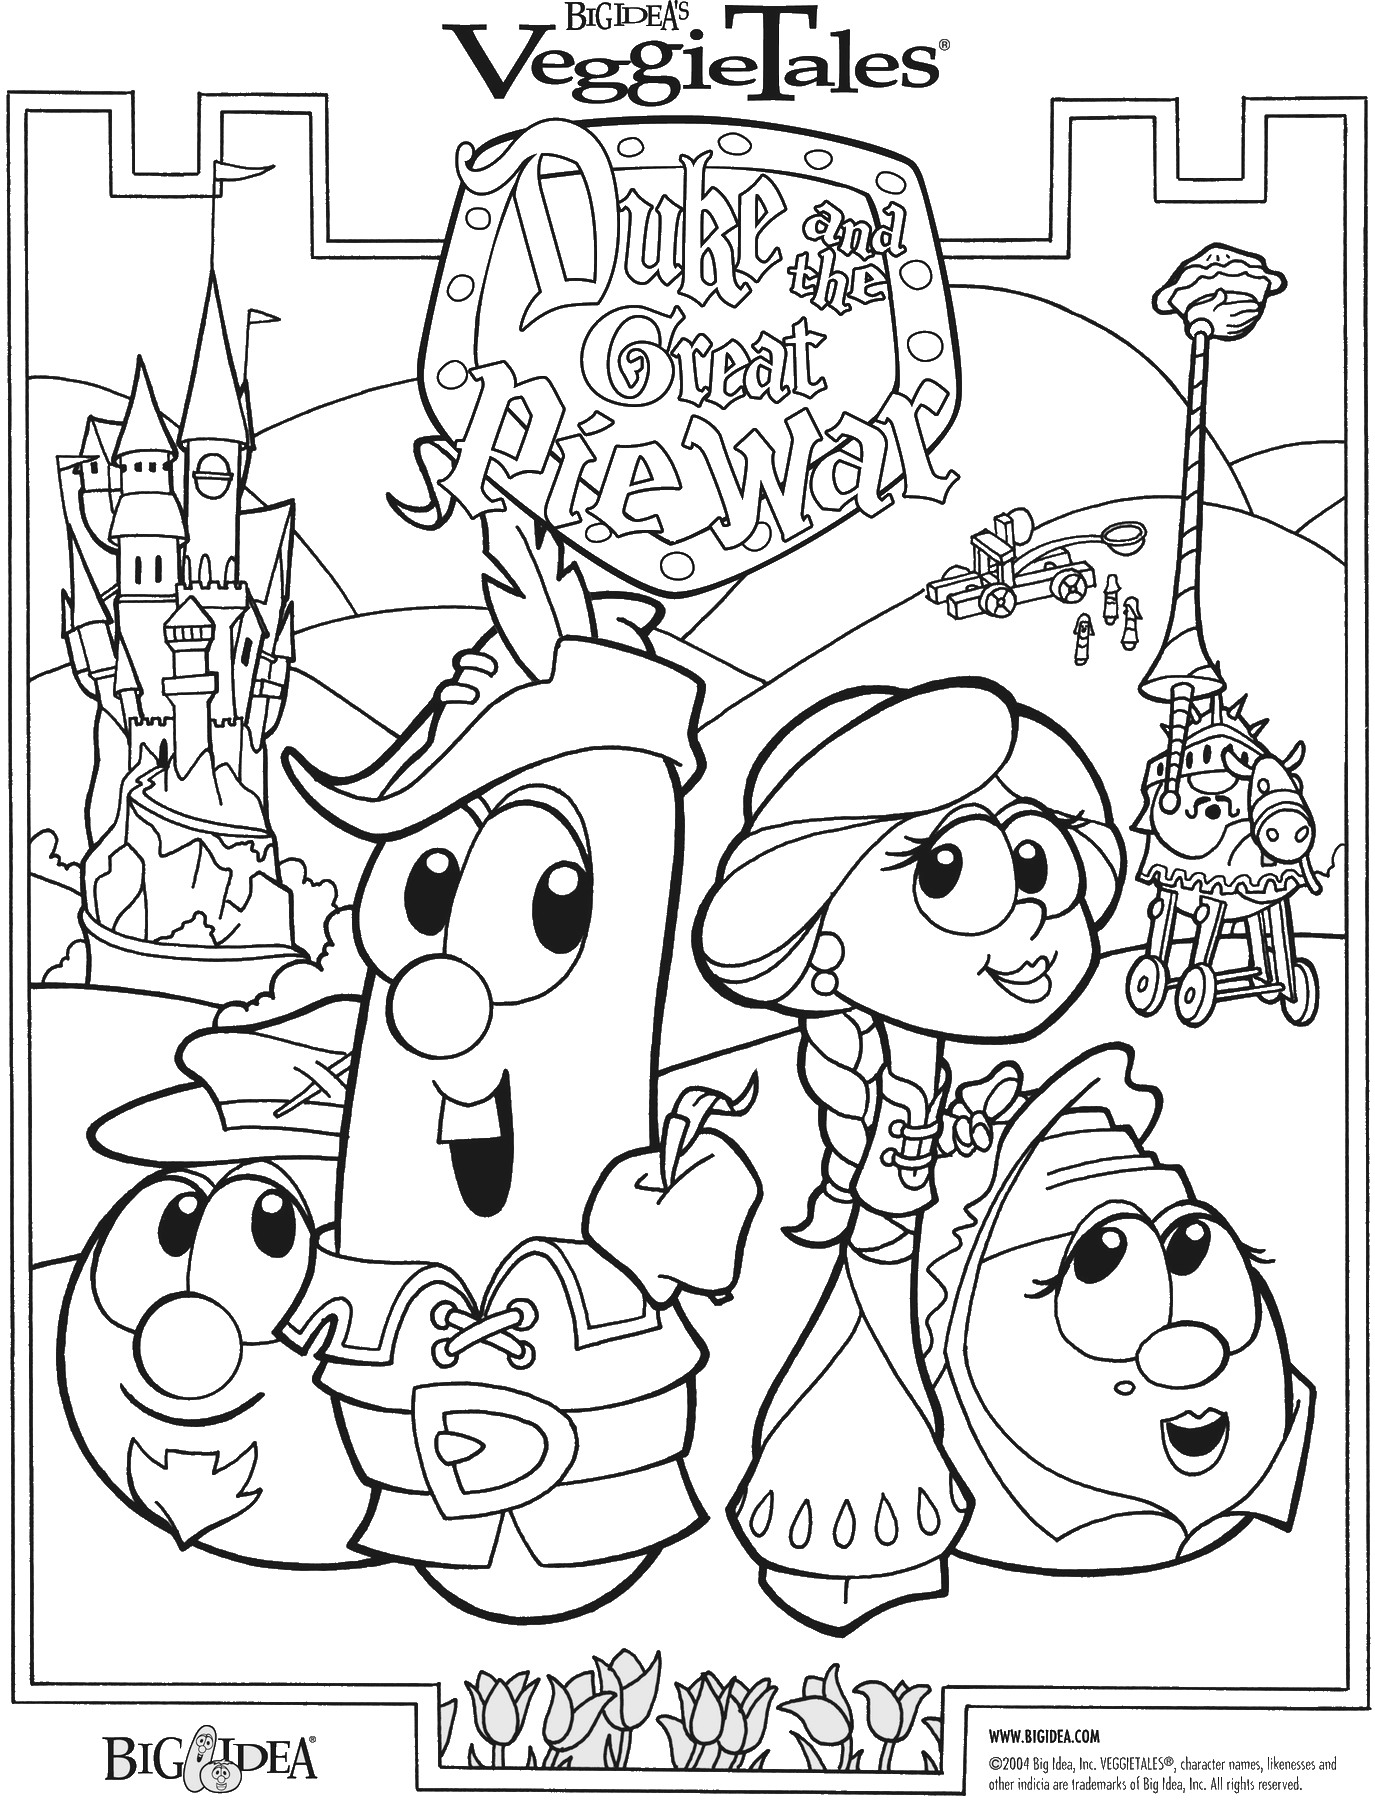 veggietales coloring sheets free printable veggie tales coloring pages for kids sheets veggietales coloring